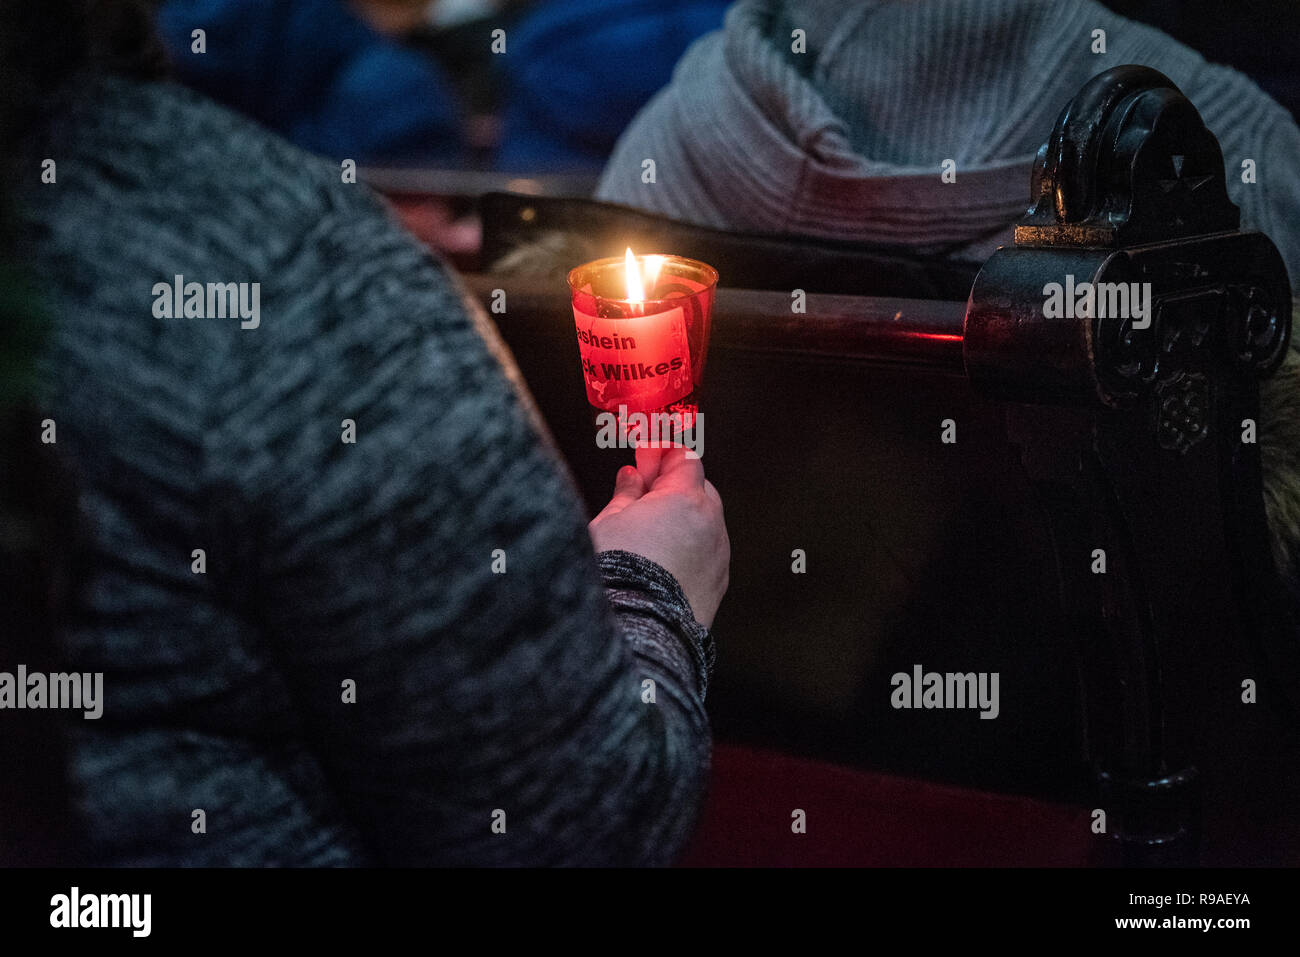 Philadelphia, USA. 20th December, 2018. Hundreds gather for the annual Homeless Memorial in Arch St United Methodist Church. Over two hundred names of homeless people who died throughout the year were read out during a moving candle-lit service. Photo Credit: Chris Baker Evens. December 20 2018. Credit: Christopher Evens/Alamy Live News Stock Photo